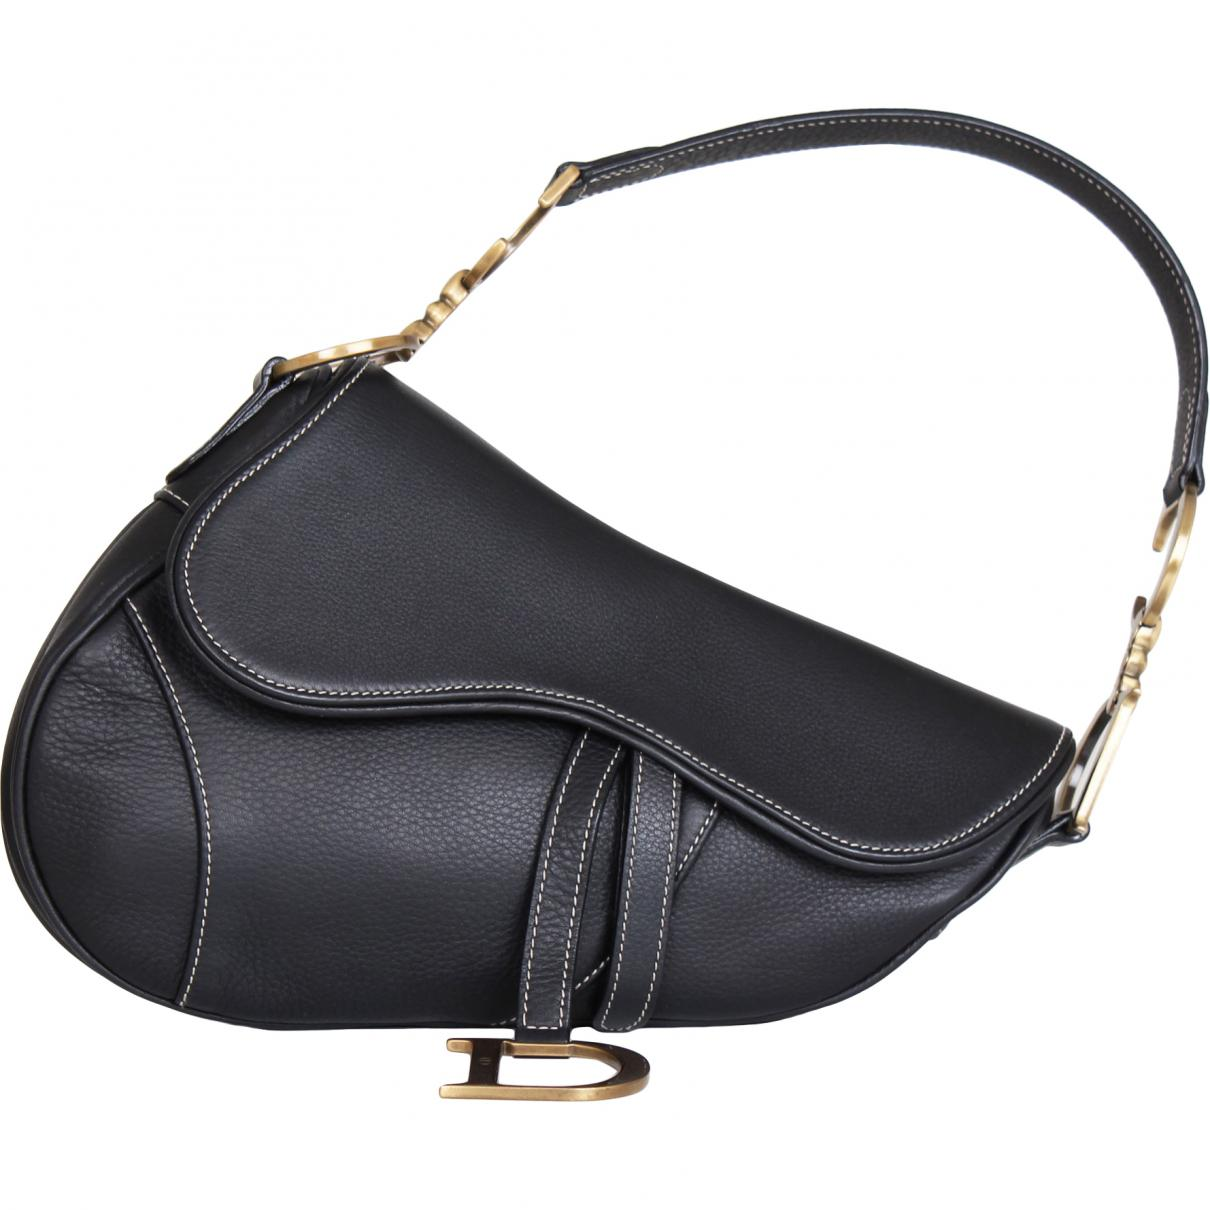 Dior Saddle Leather Handbag in Black - Lyst 03d23b602c